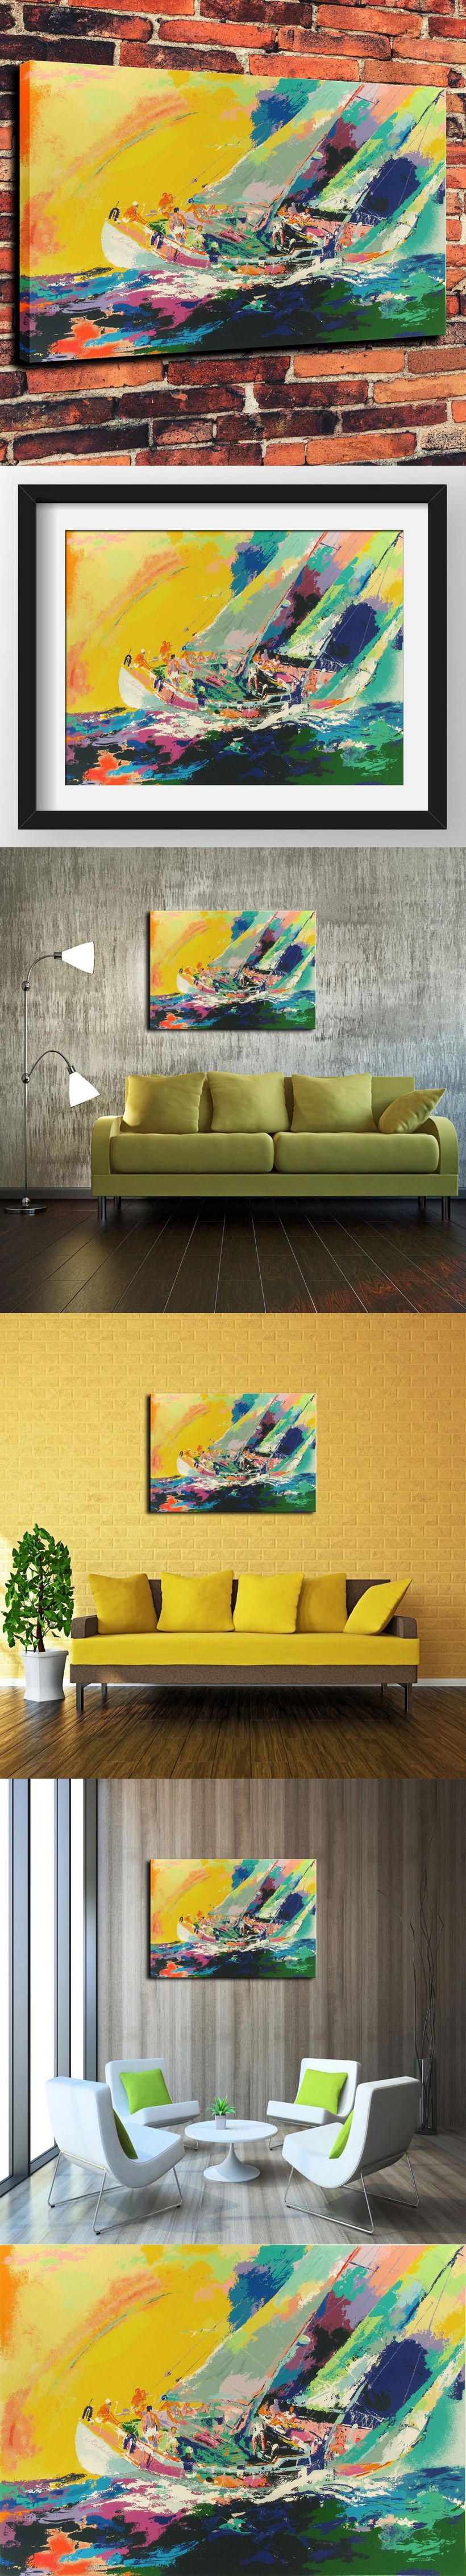 Canvas Artwork Prints Watercolor Oil Painting for Western Home Decor ...